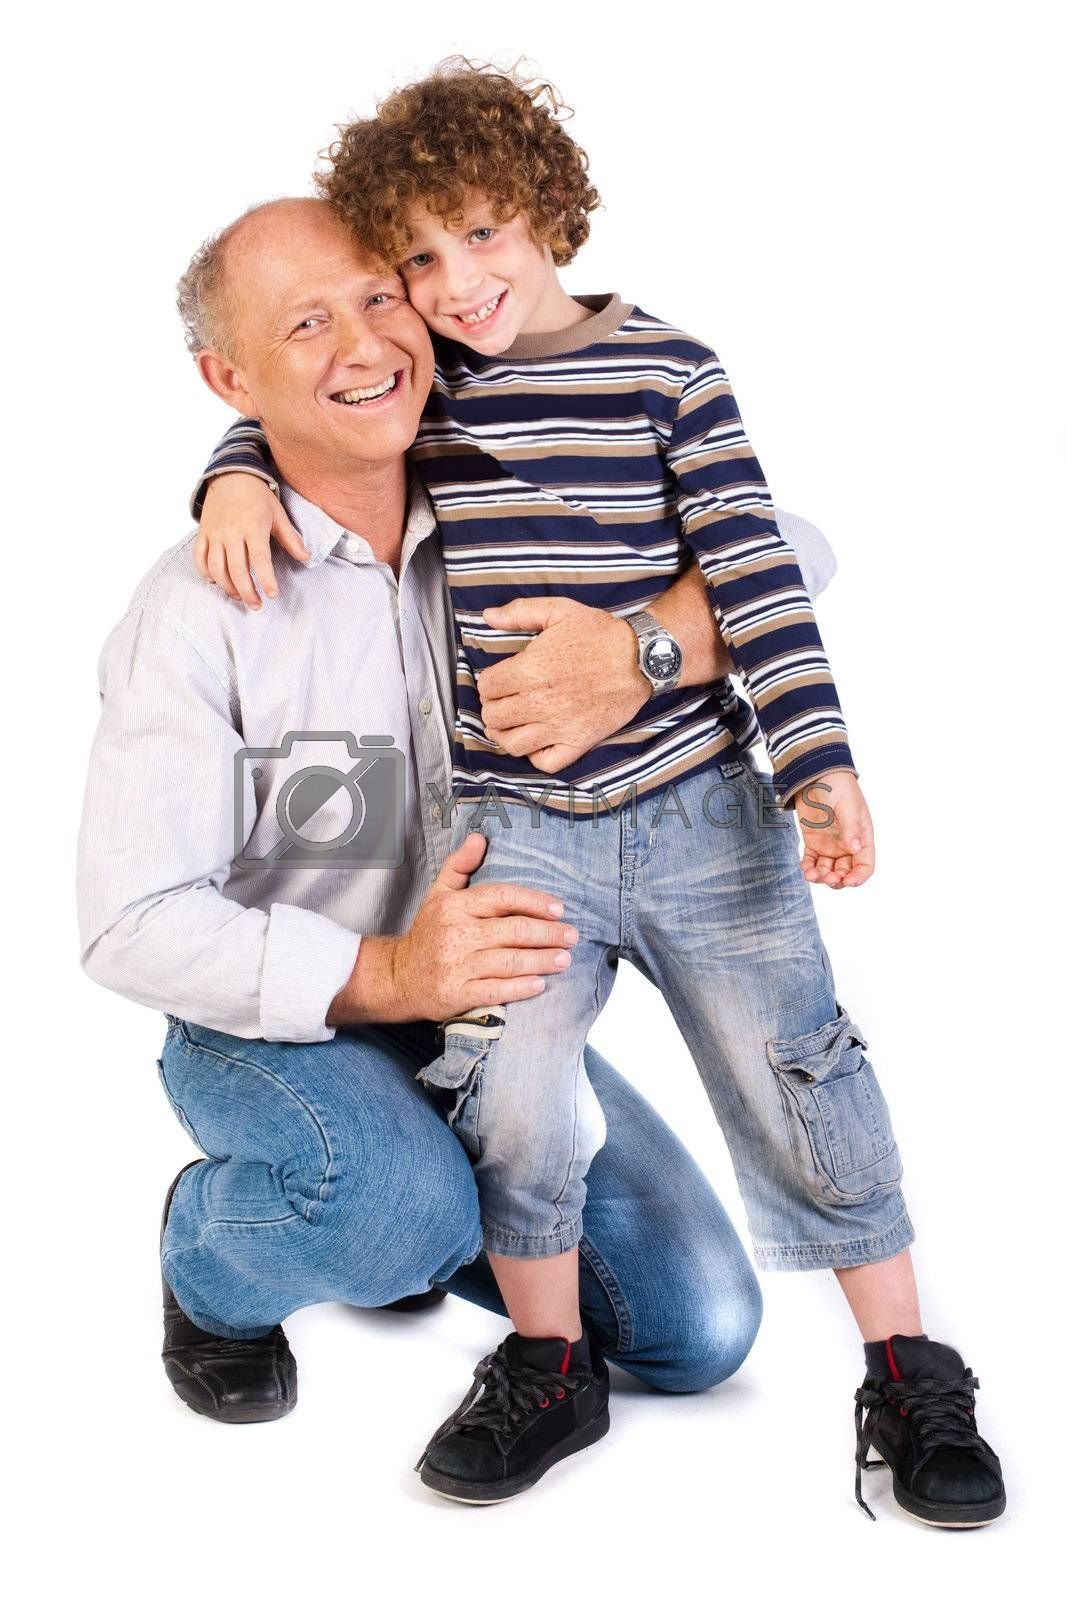 Grandfather embracing his grandson, indoors against white background..